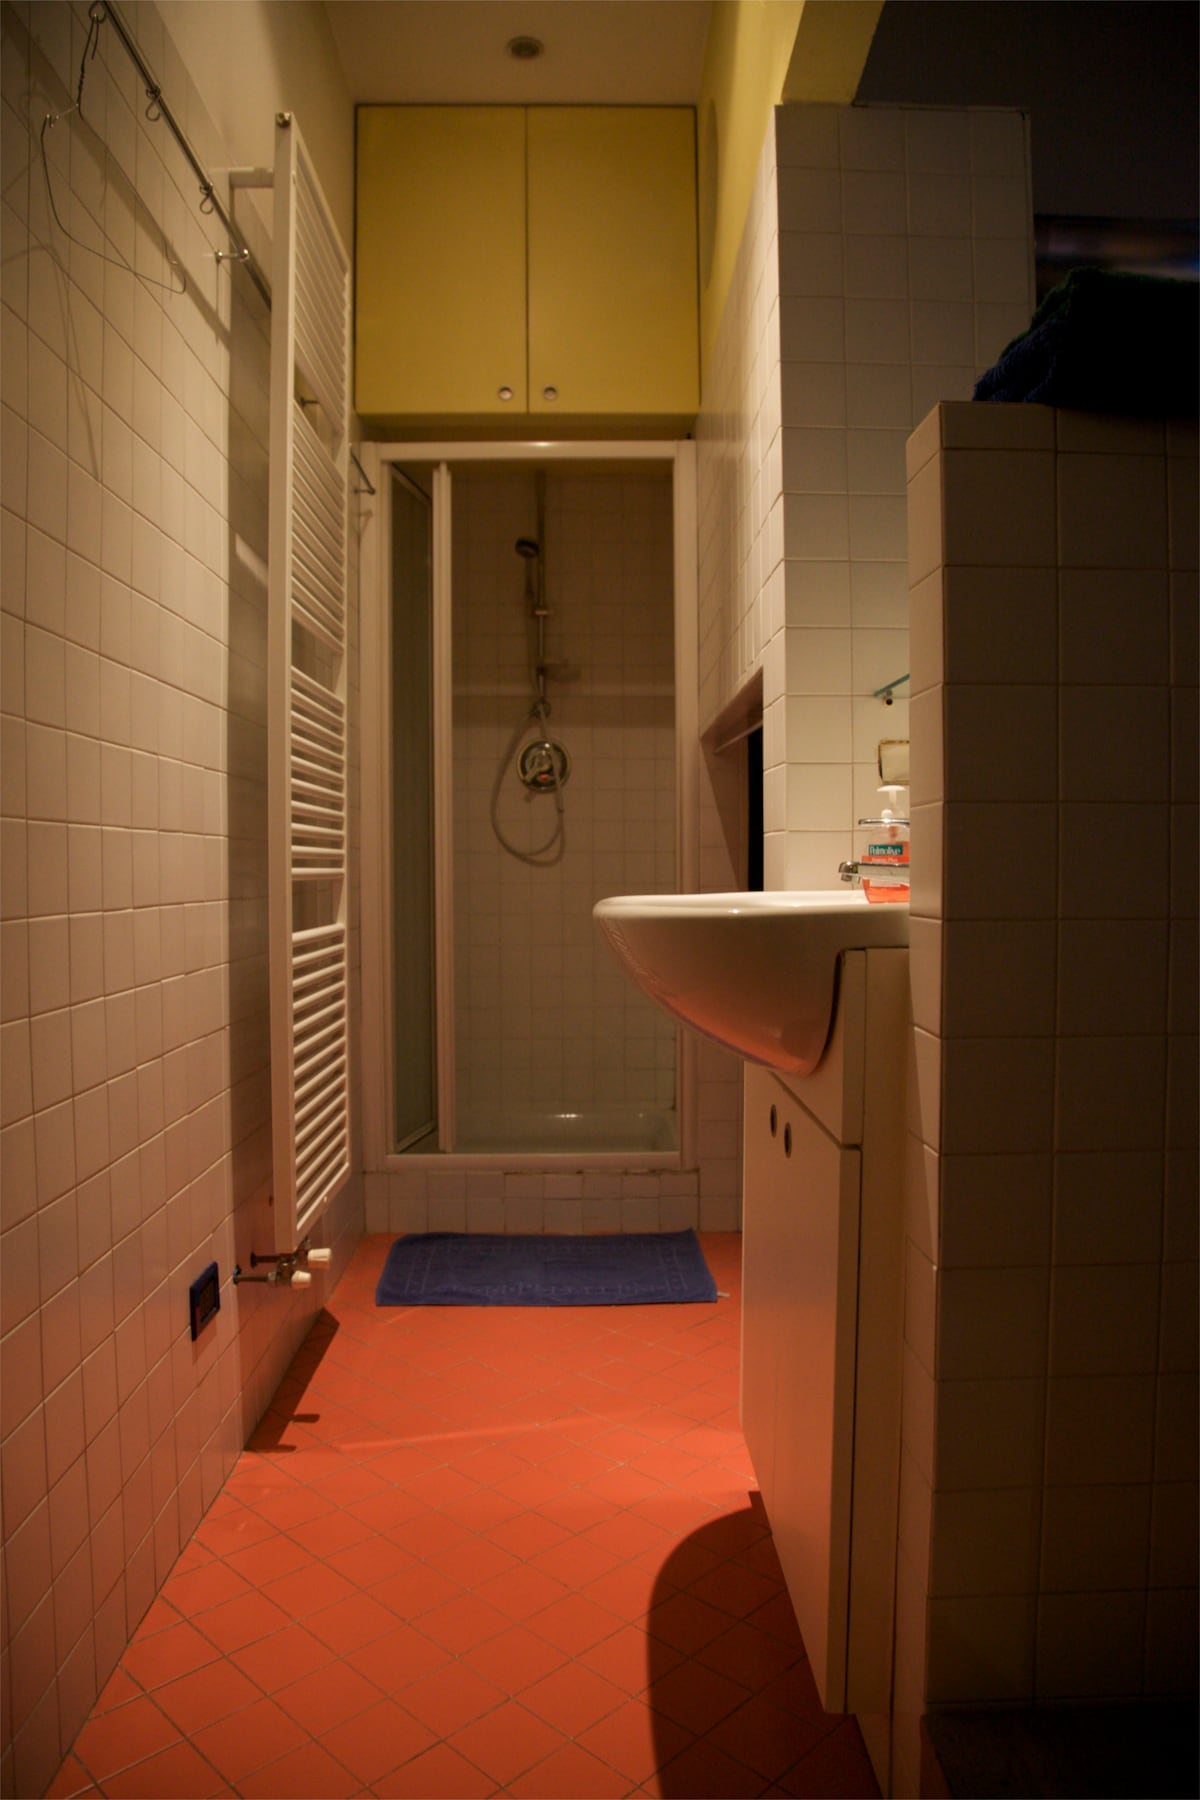 lavatory, wardrobe, shower. On right, chairs to the mezanin bed.